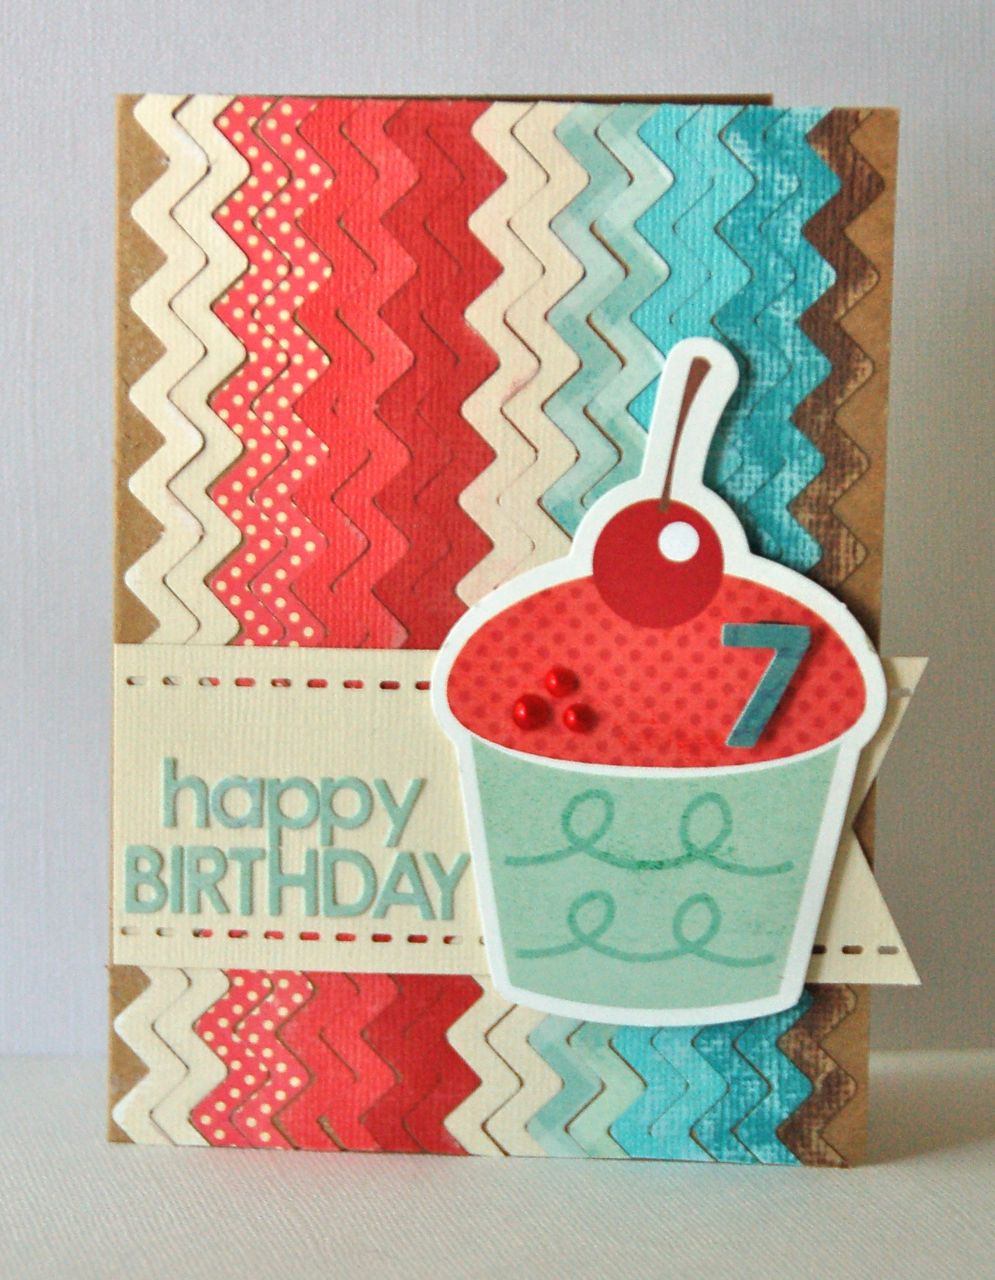 Happy 7th Birthday card by Kimber McGray